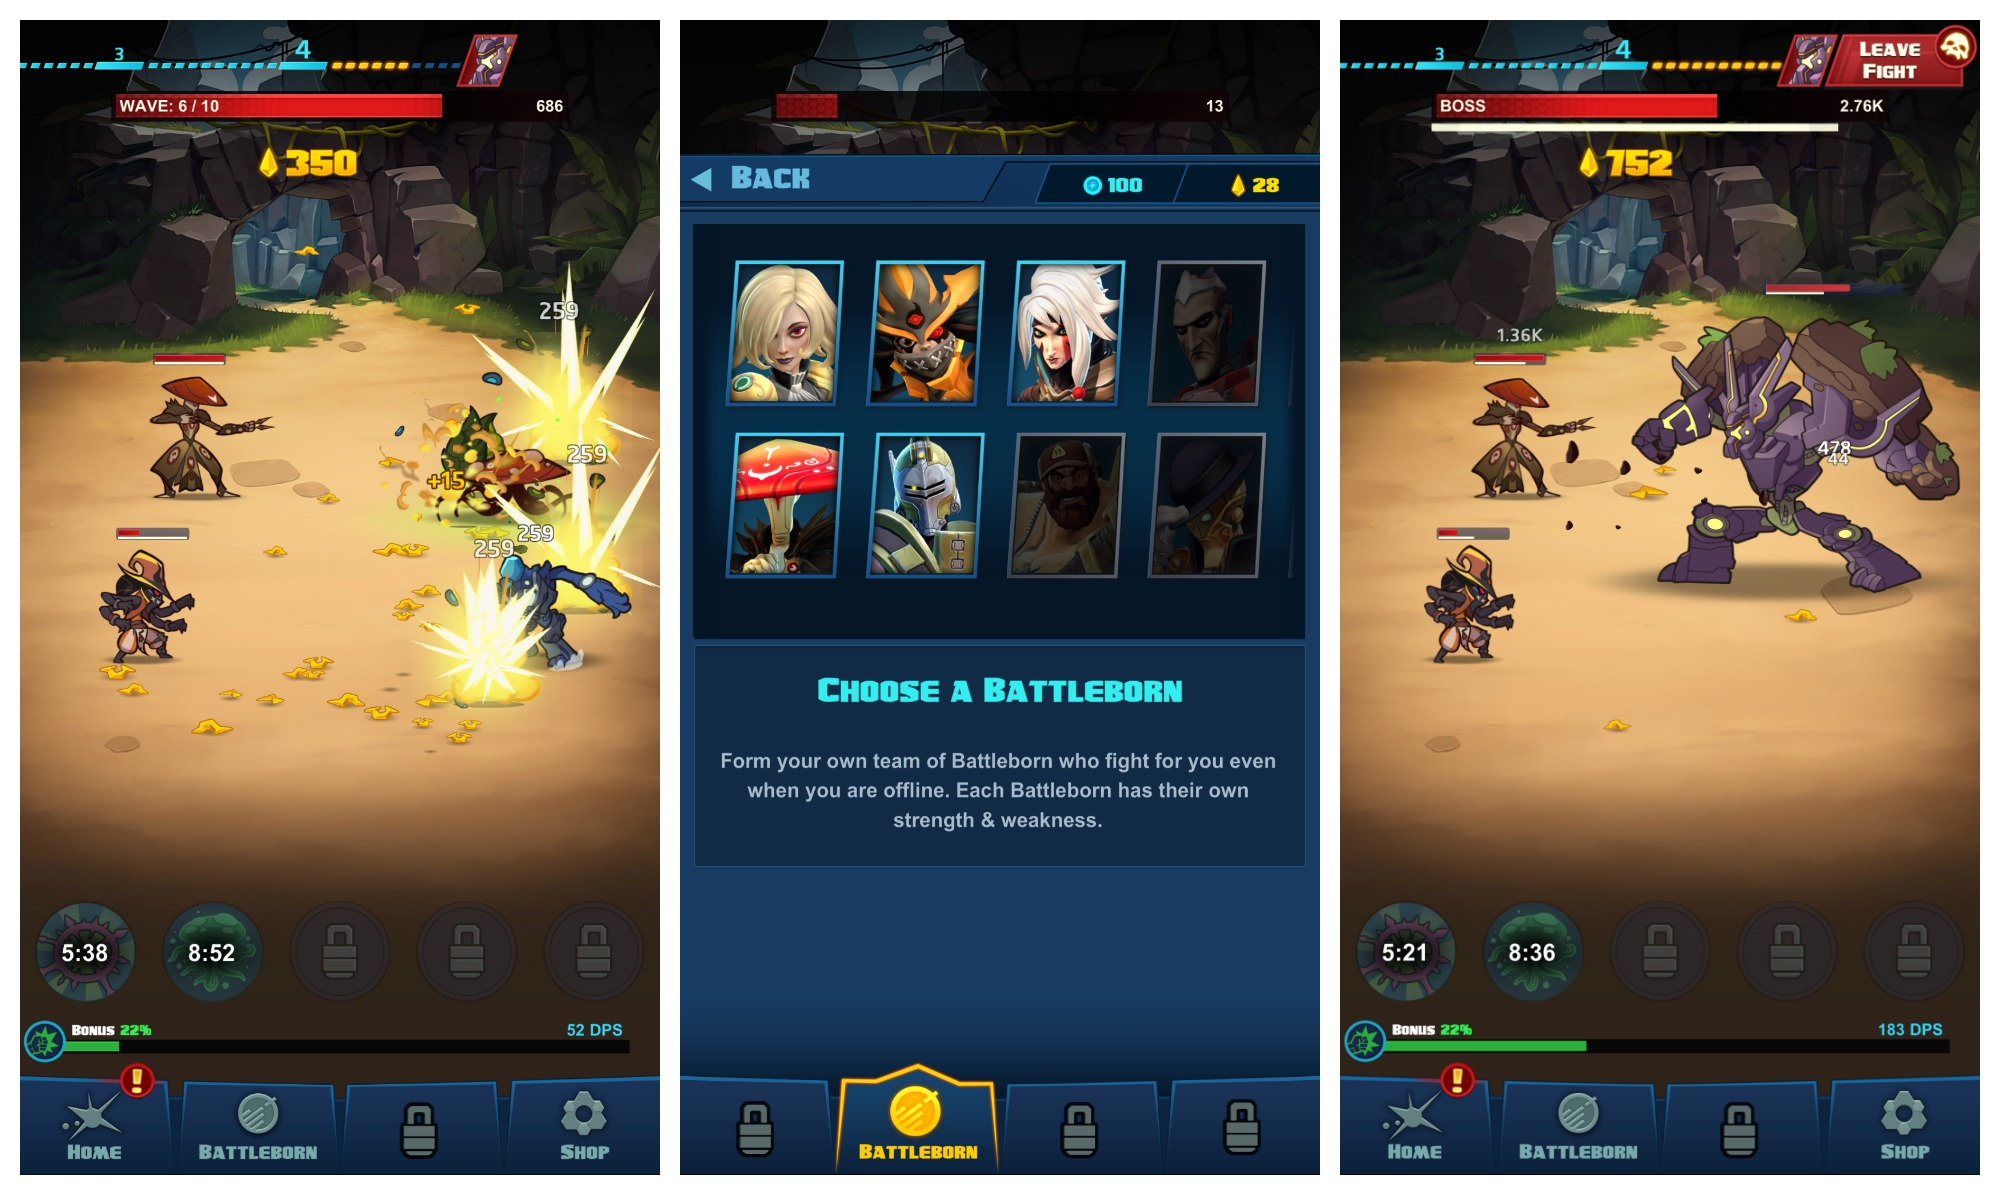 battleborn tap now available on android